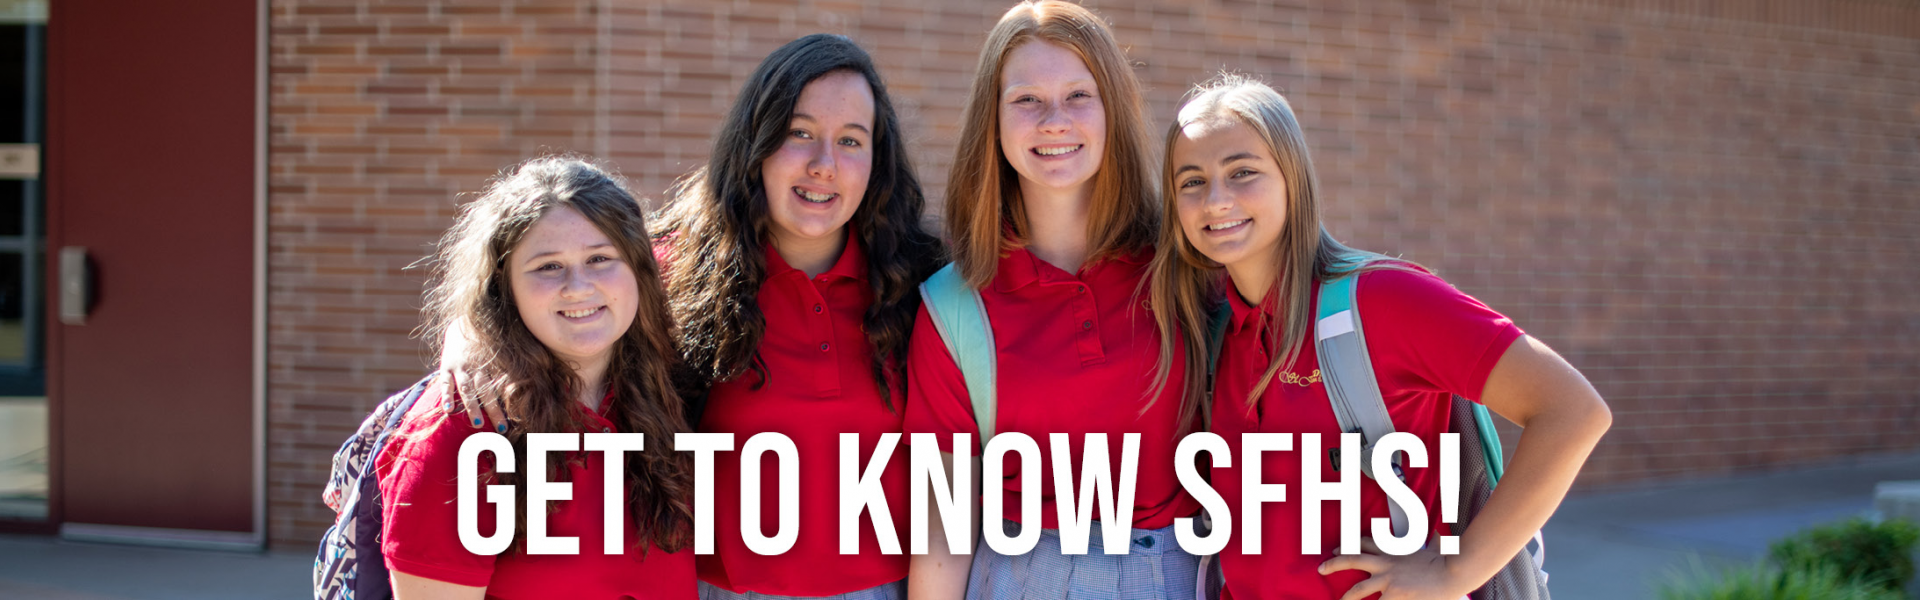 Get to know SFHS!